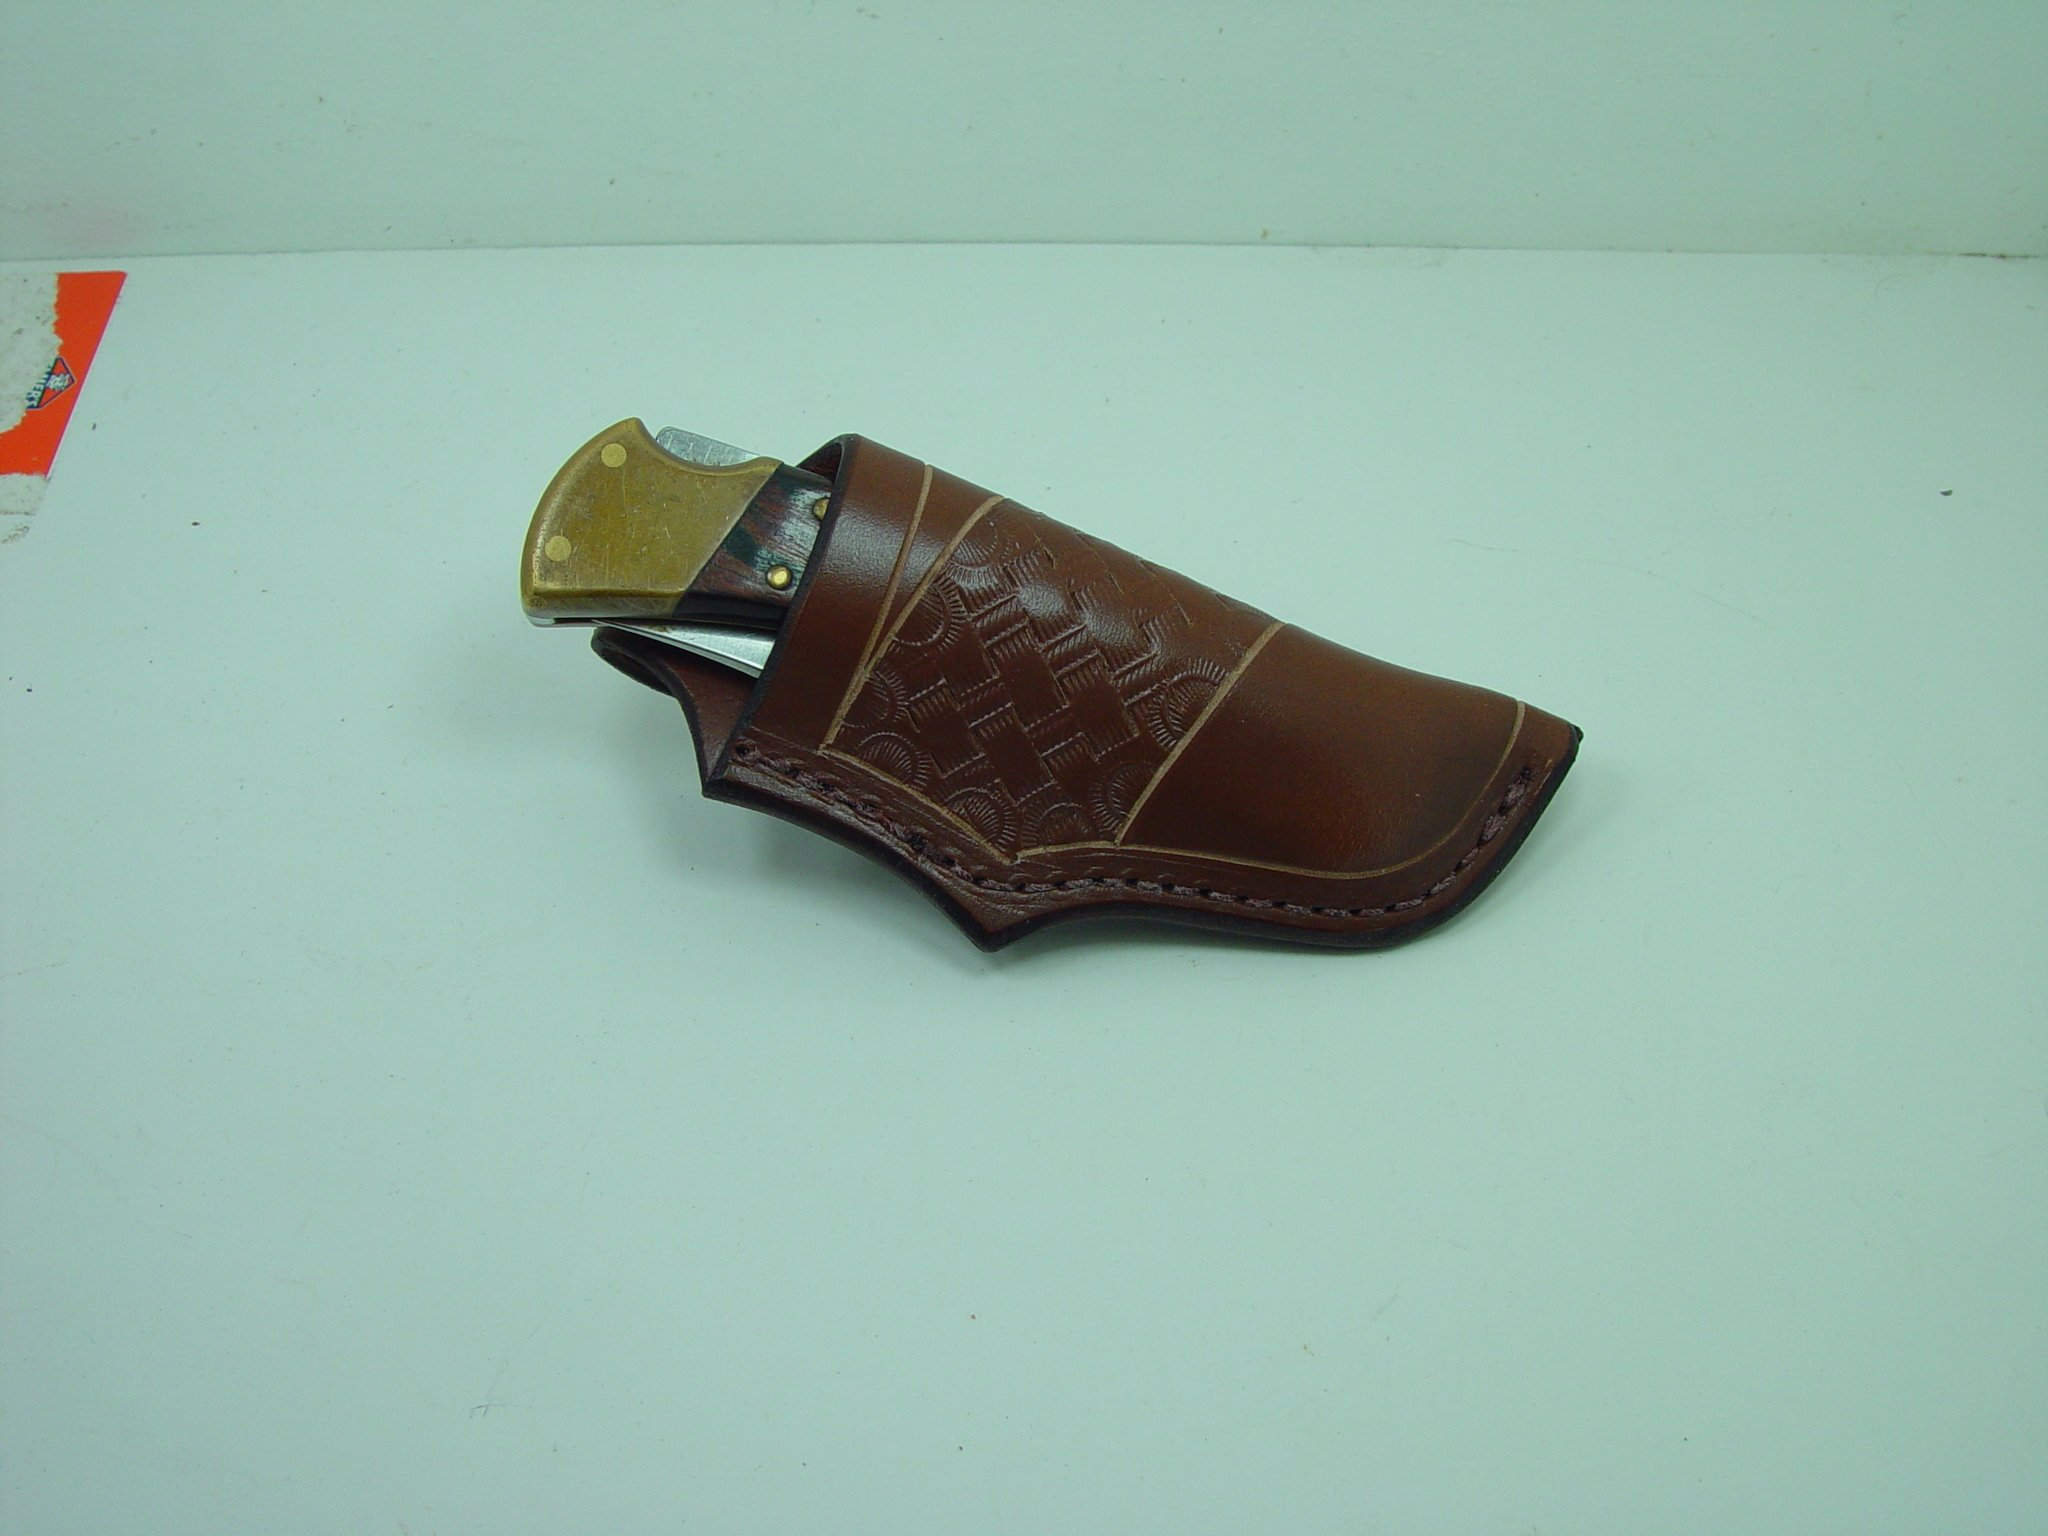 Buck 110 Folding Pocket Knife Sheath. The Sheath Is Made Out of 9 Ounce Leather. . The Sheath Is Died Light Brown with a Basket Weave Tooling. This I for Sheath Only Knife Not Included.